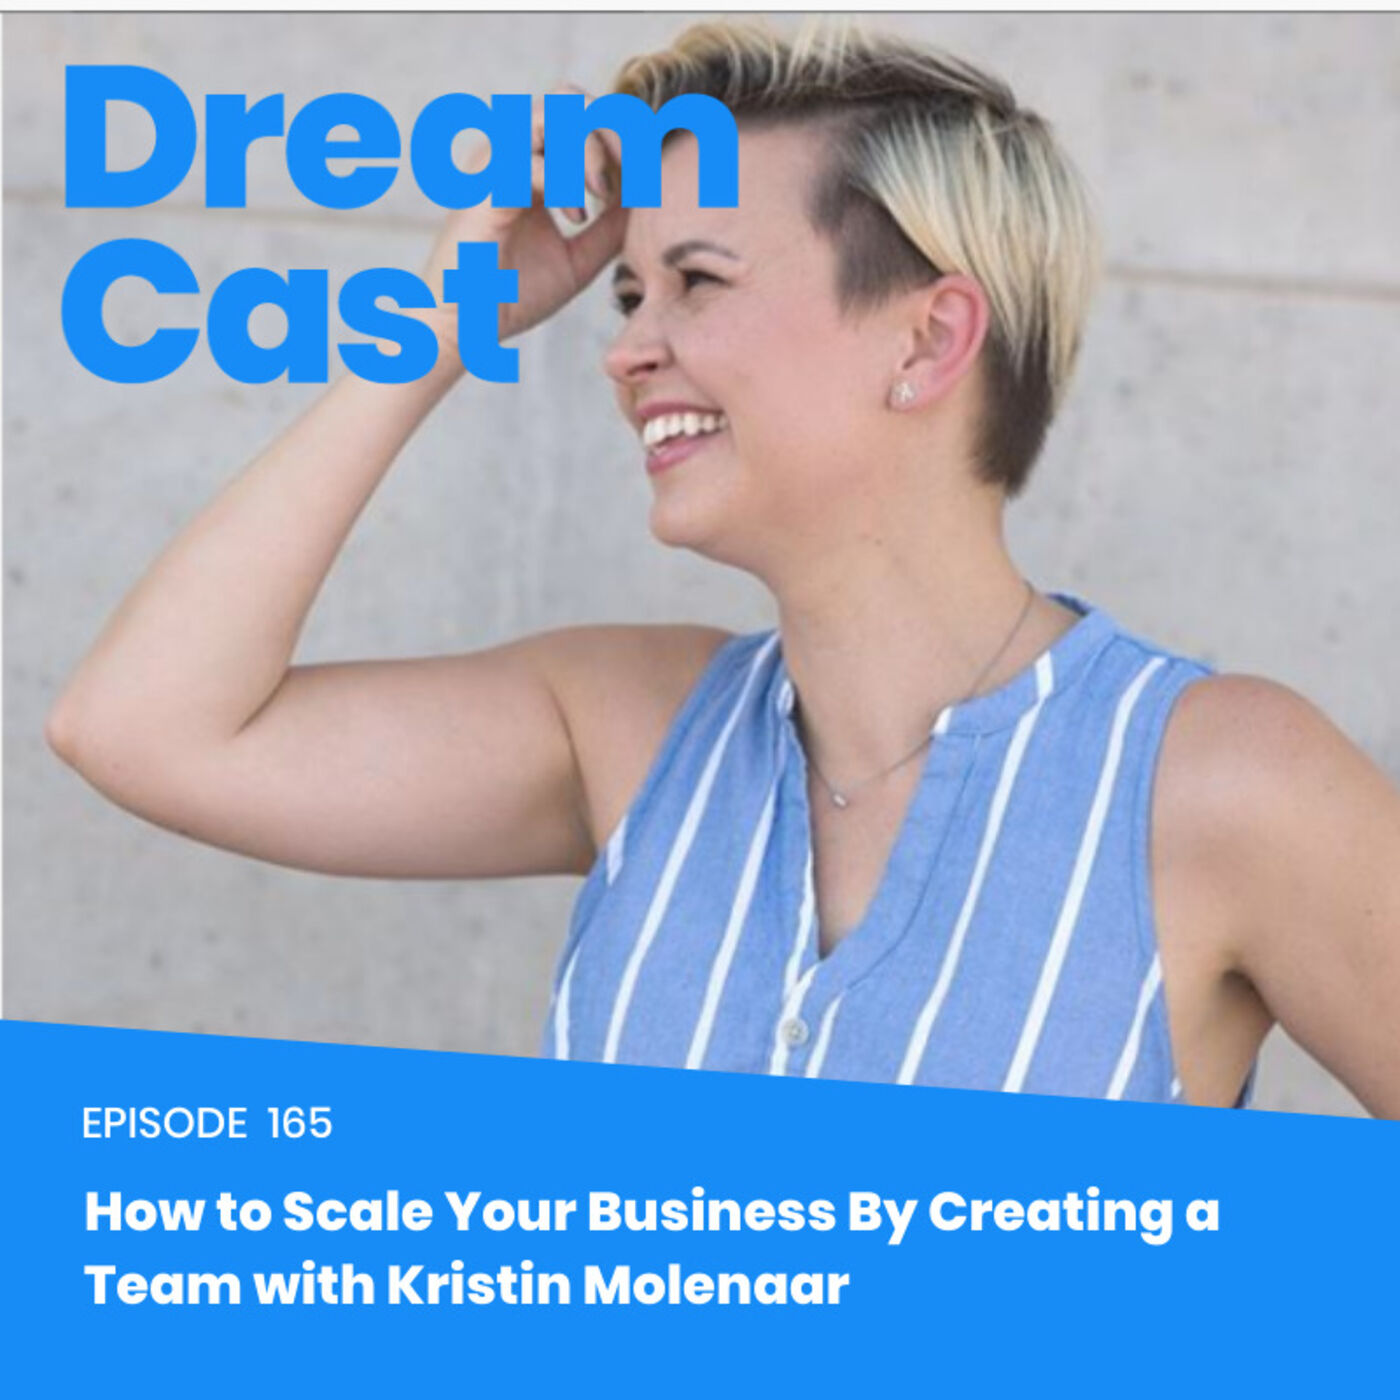 Episode 165 – How to Scale Your Business By Creating a Team with Kristin Molenaar